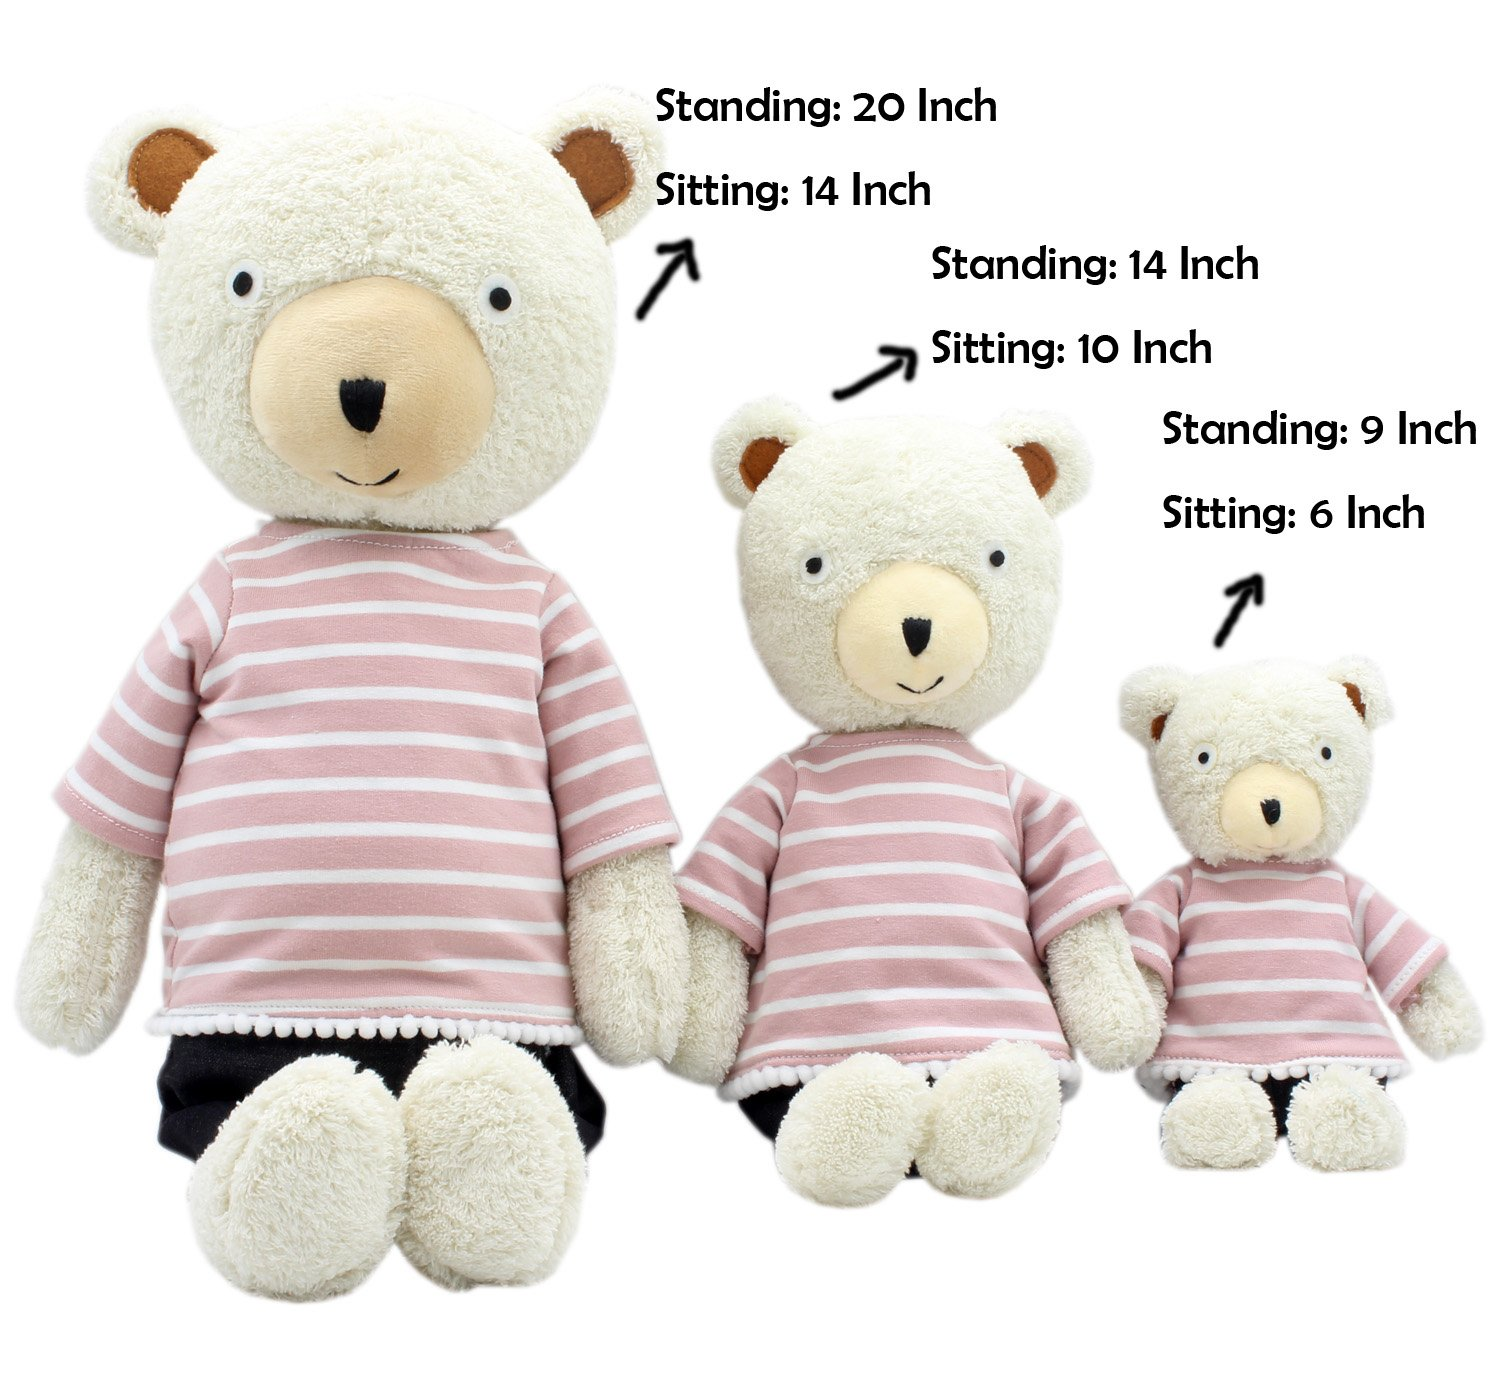 JIARU Stuffed Animals Toys Teddy Bear Plush Dressed Dolls with Removable Clothes Striped Brown, 20 Inch